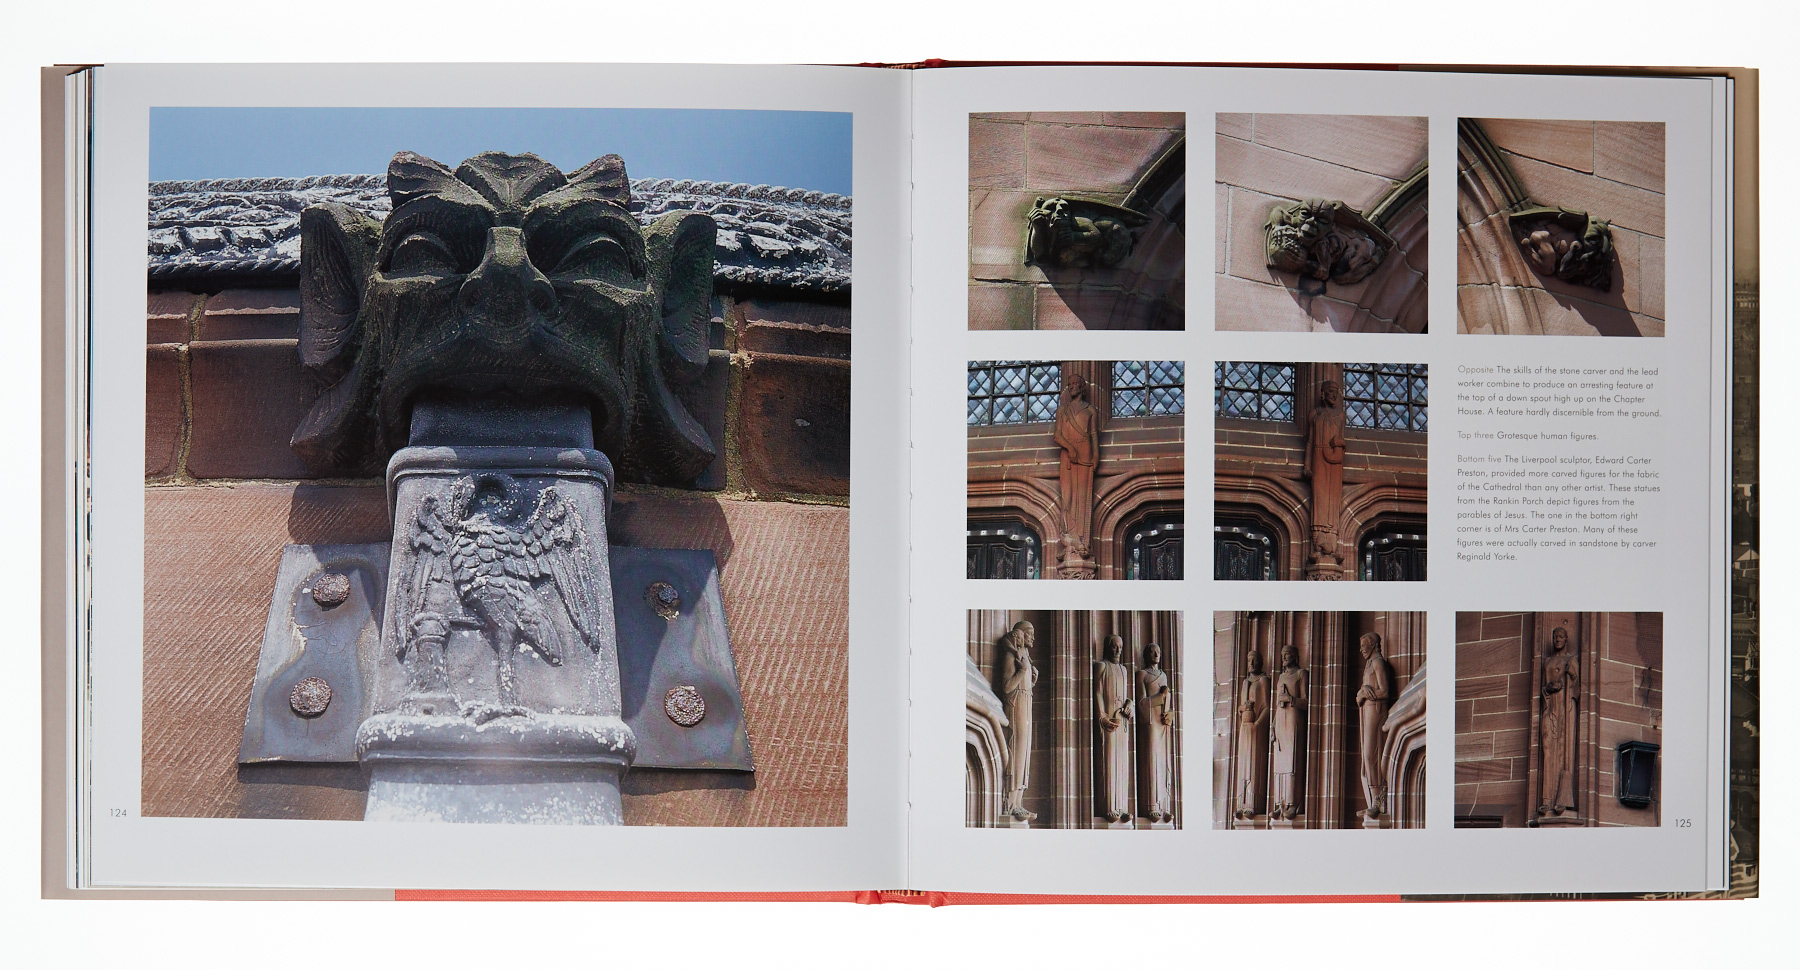 liverpool-cathedral-book-page-124.jpg